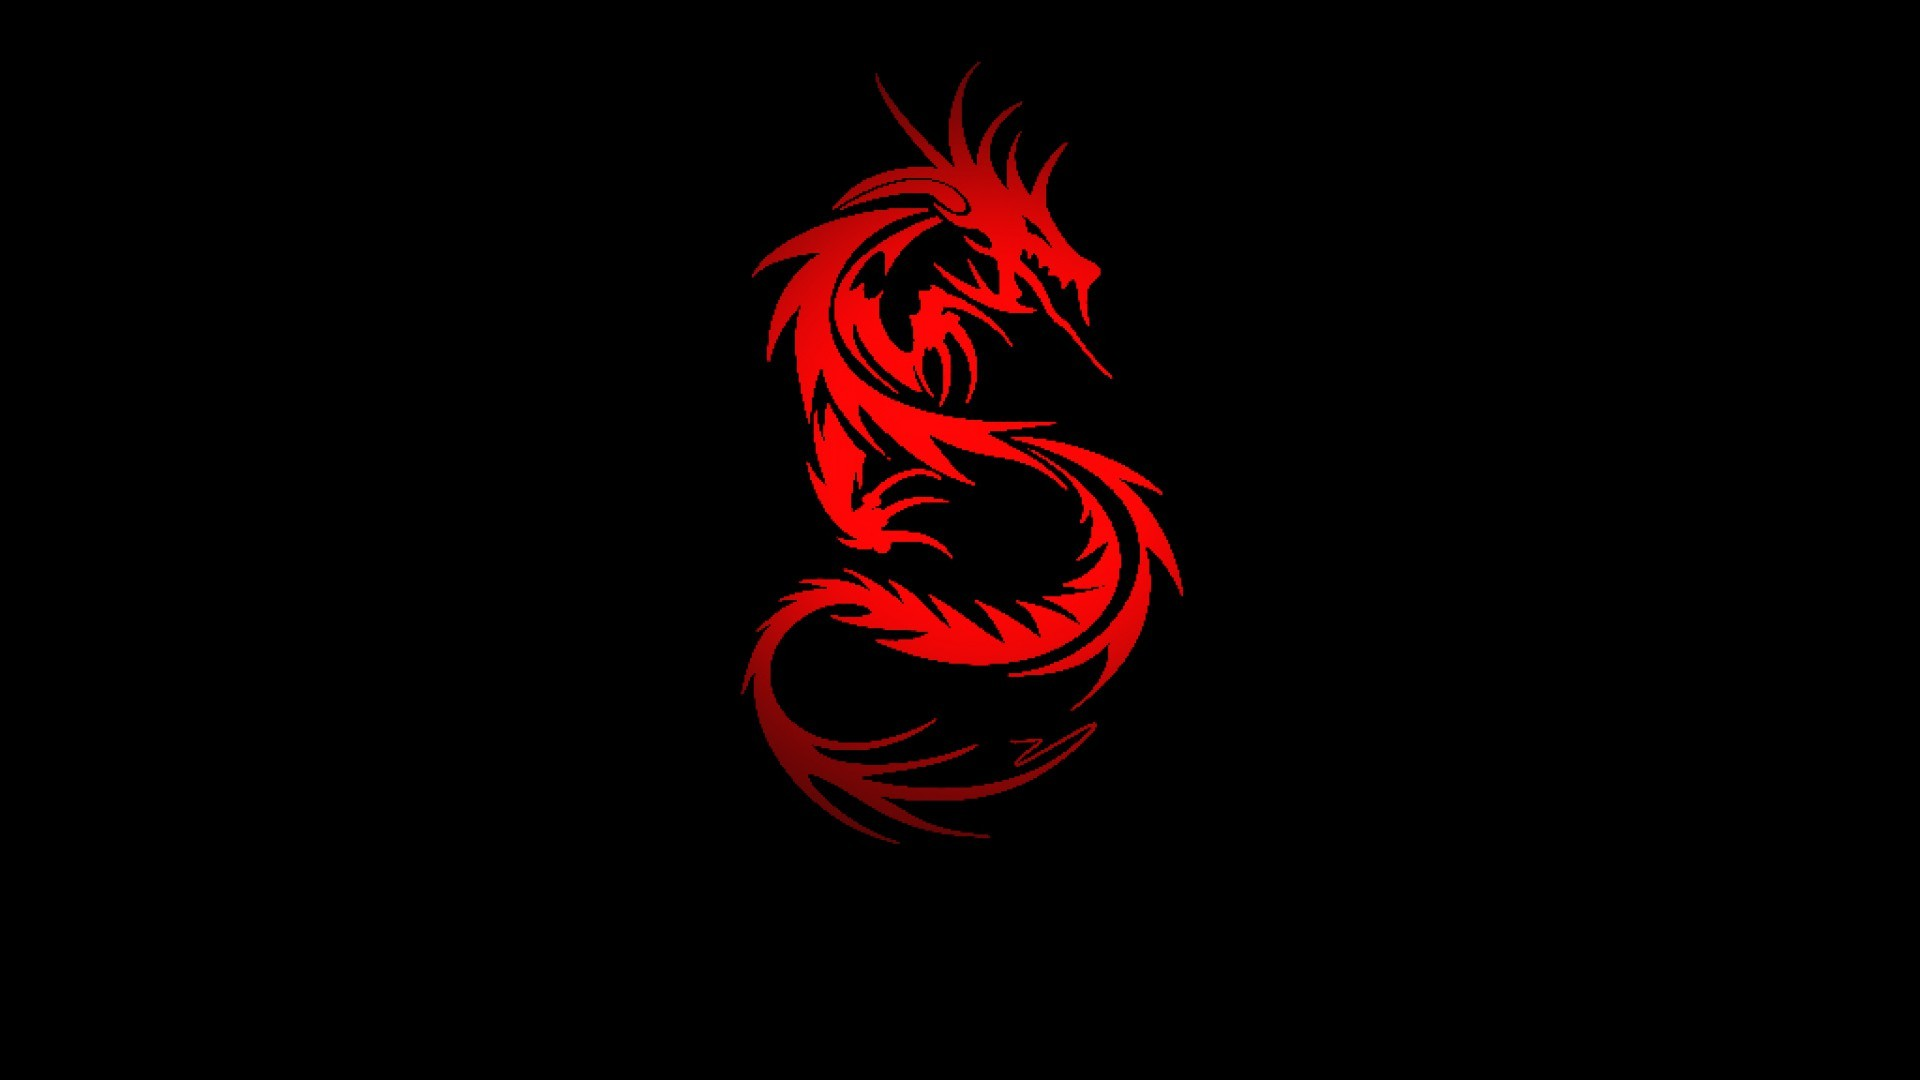 Res: 1920x1080, Chinese Dragon HD Wallpapers 1080P – Free wallpaper download